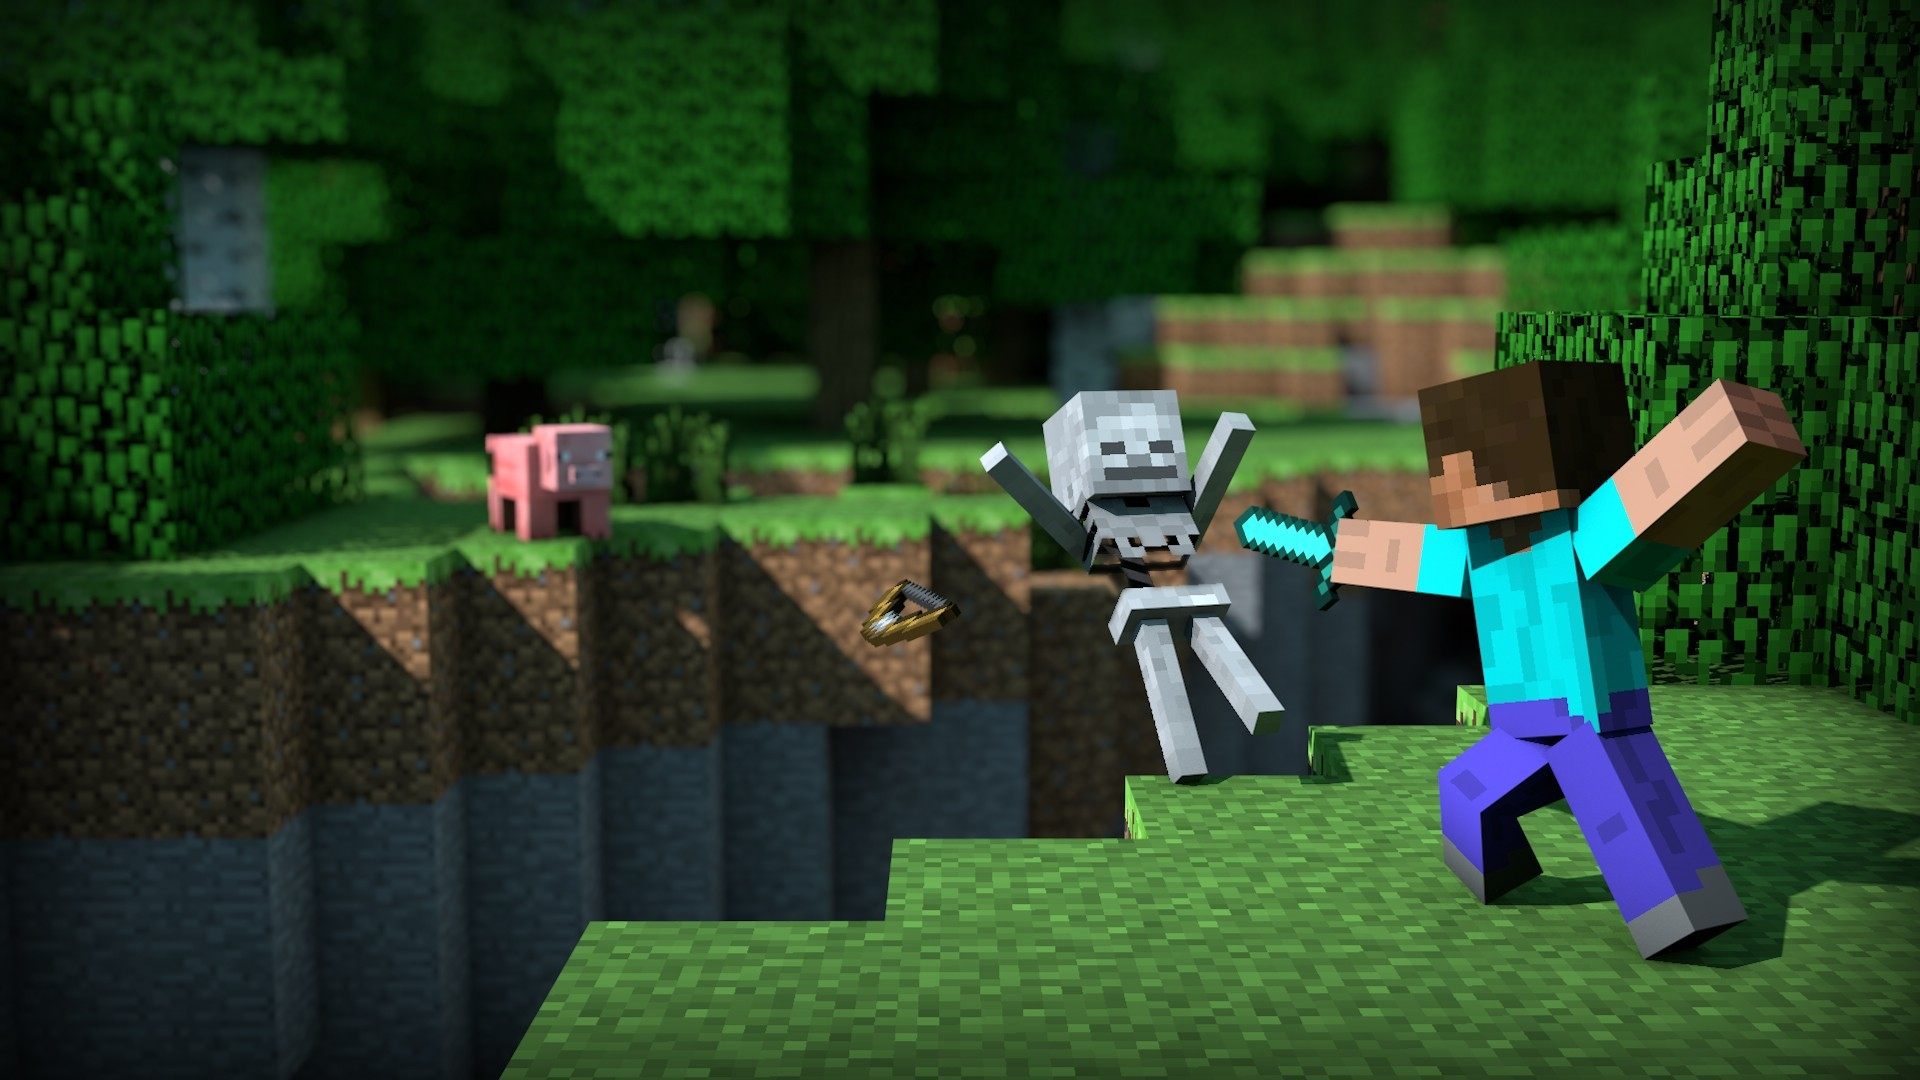 1920x1080 Top Minecraft Wallpaper. « Awesome Minecraft PhotoChicago Wallpaper »